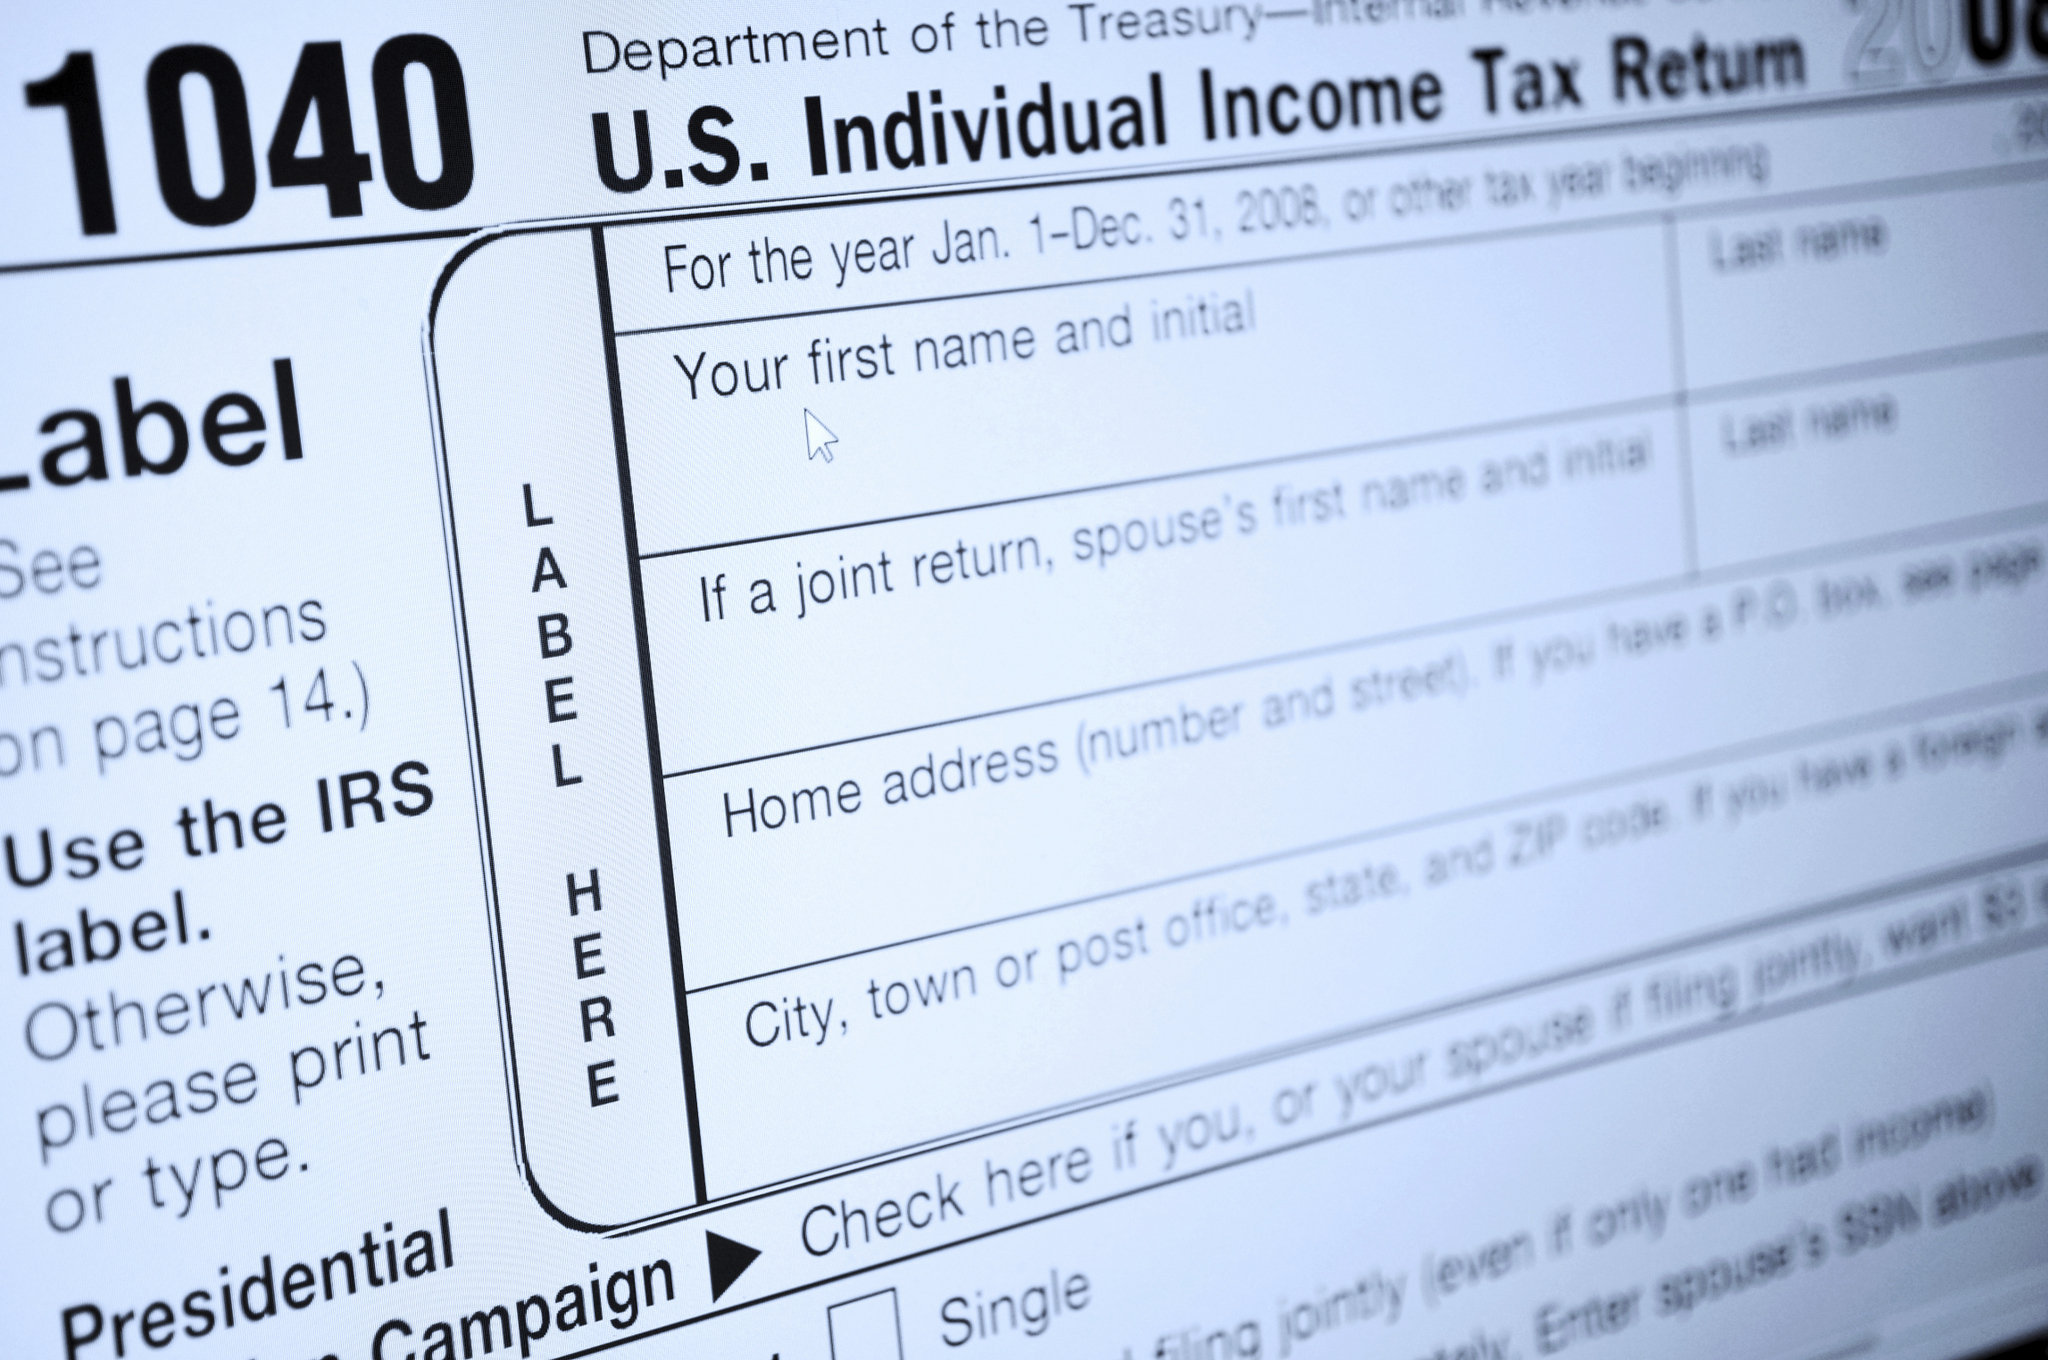 Don't make checks out to 'IRS' for federal taxes, or your